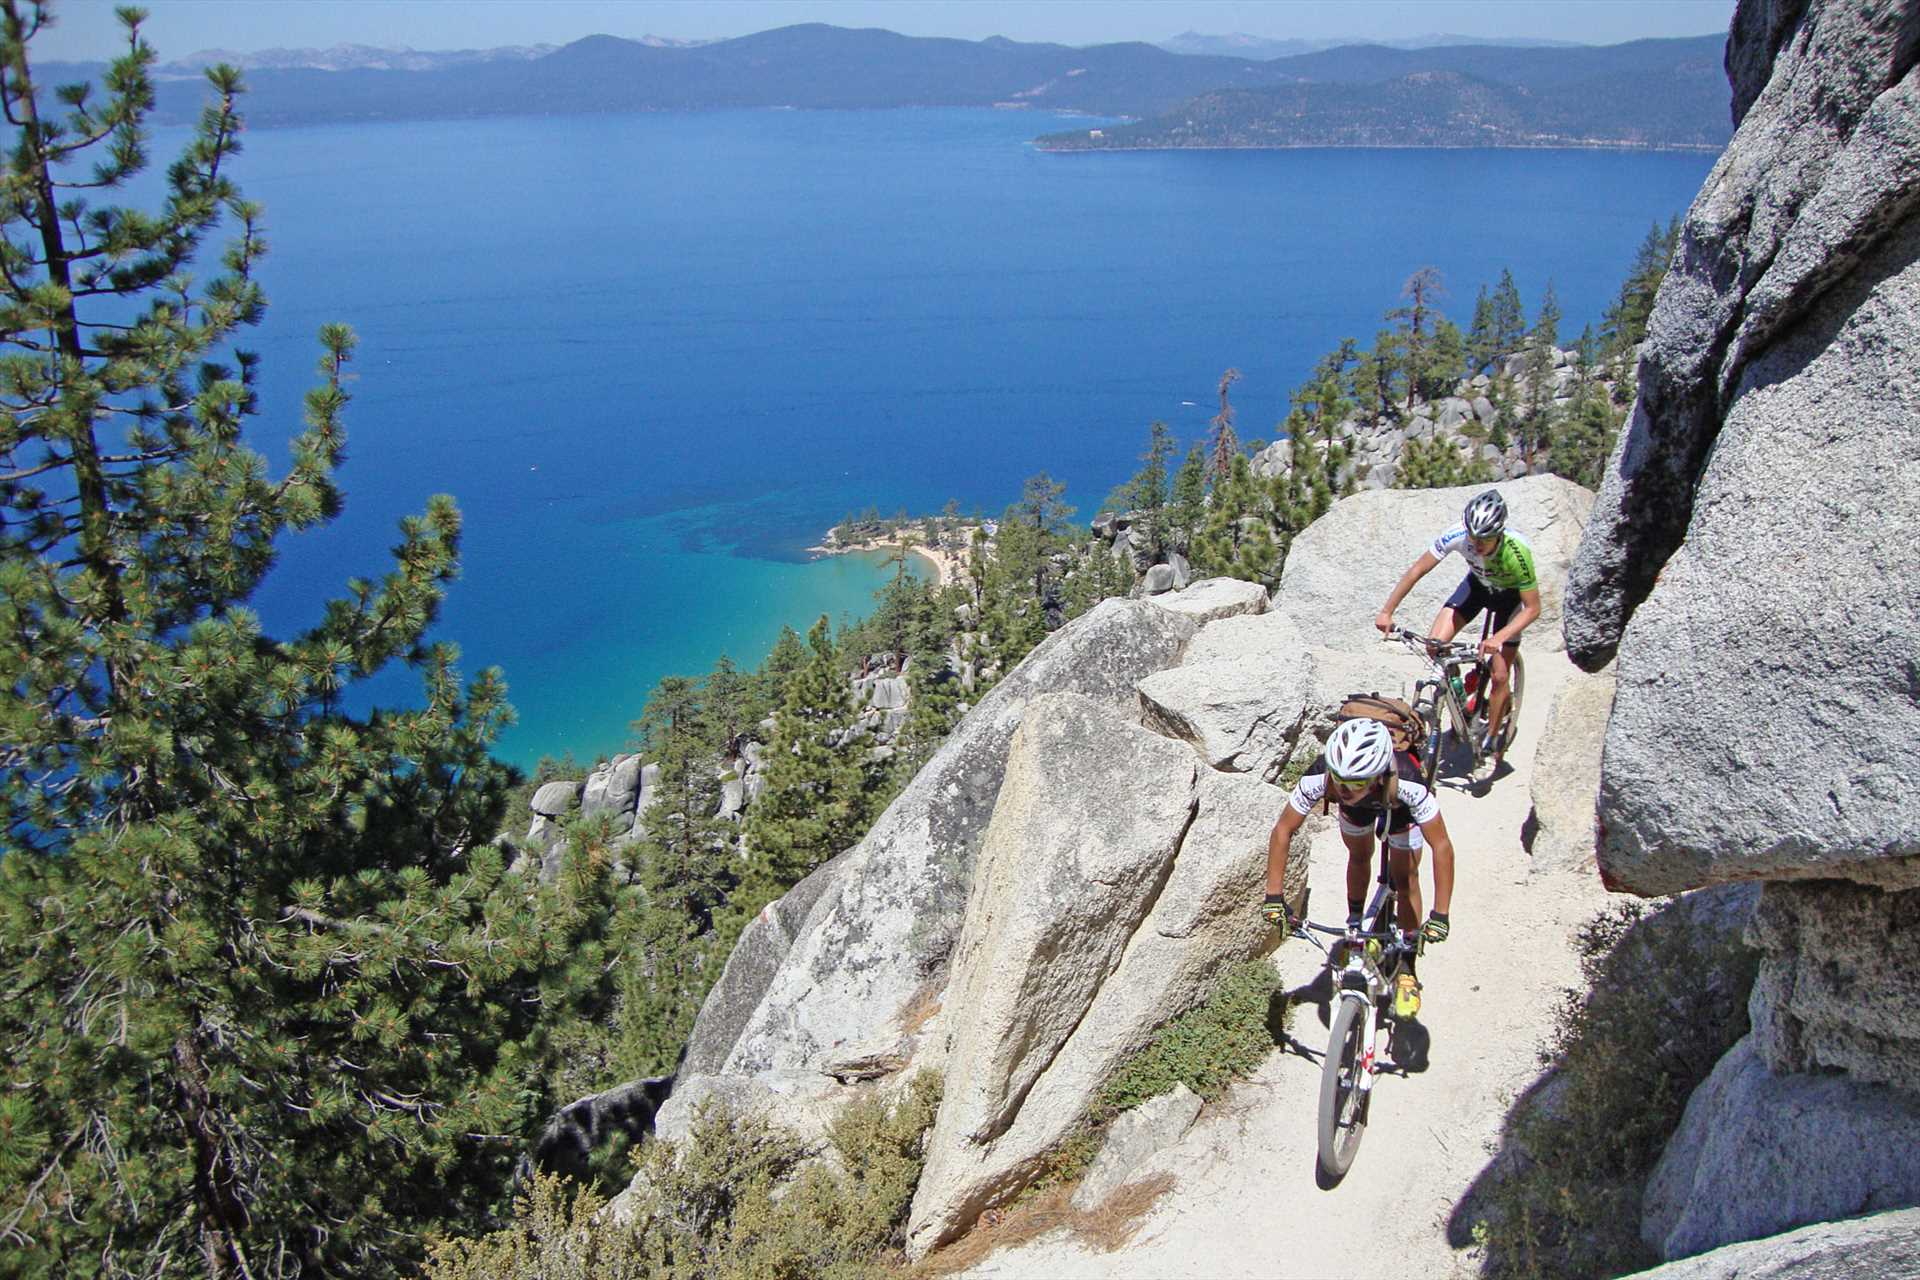 lake vacation for north rental estimates income tahoe cabin cabins rent